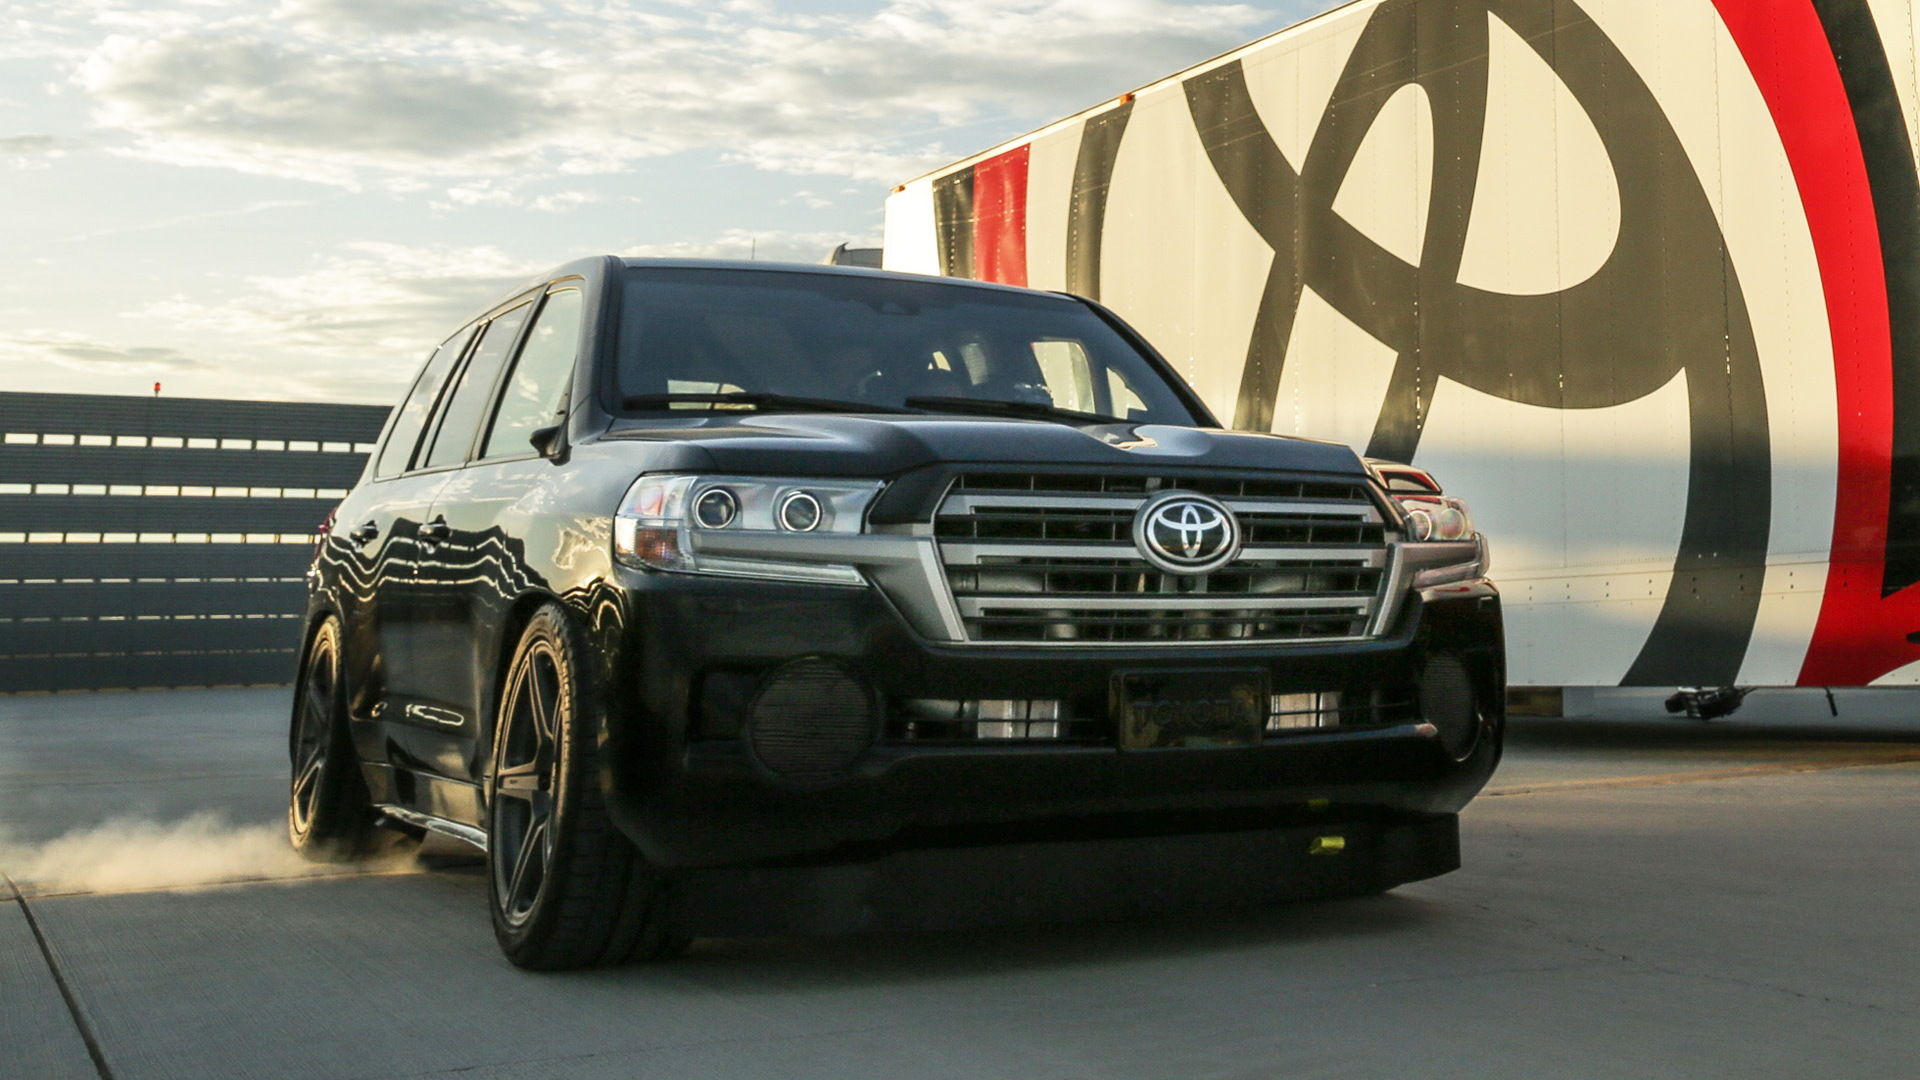 Carl Edwards drives the Toyota Land Speed Cruiser to 230.02 mph in Mojave, California